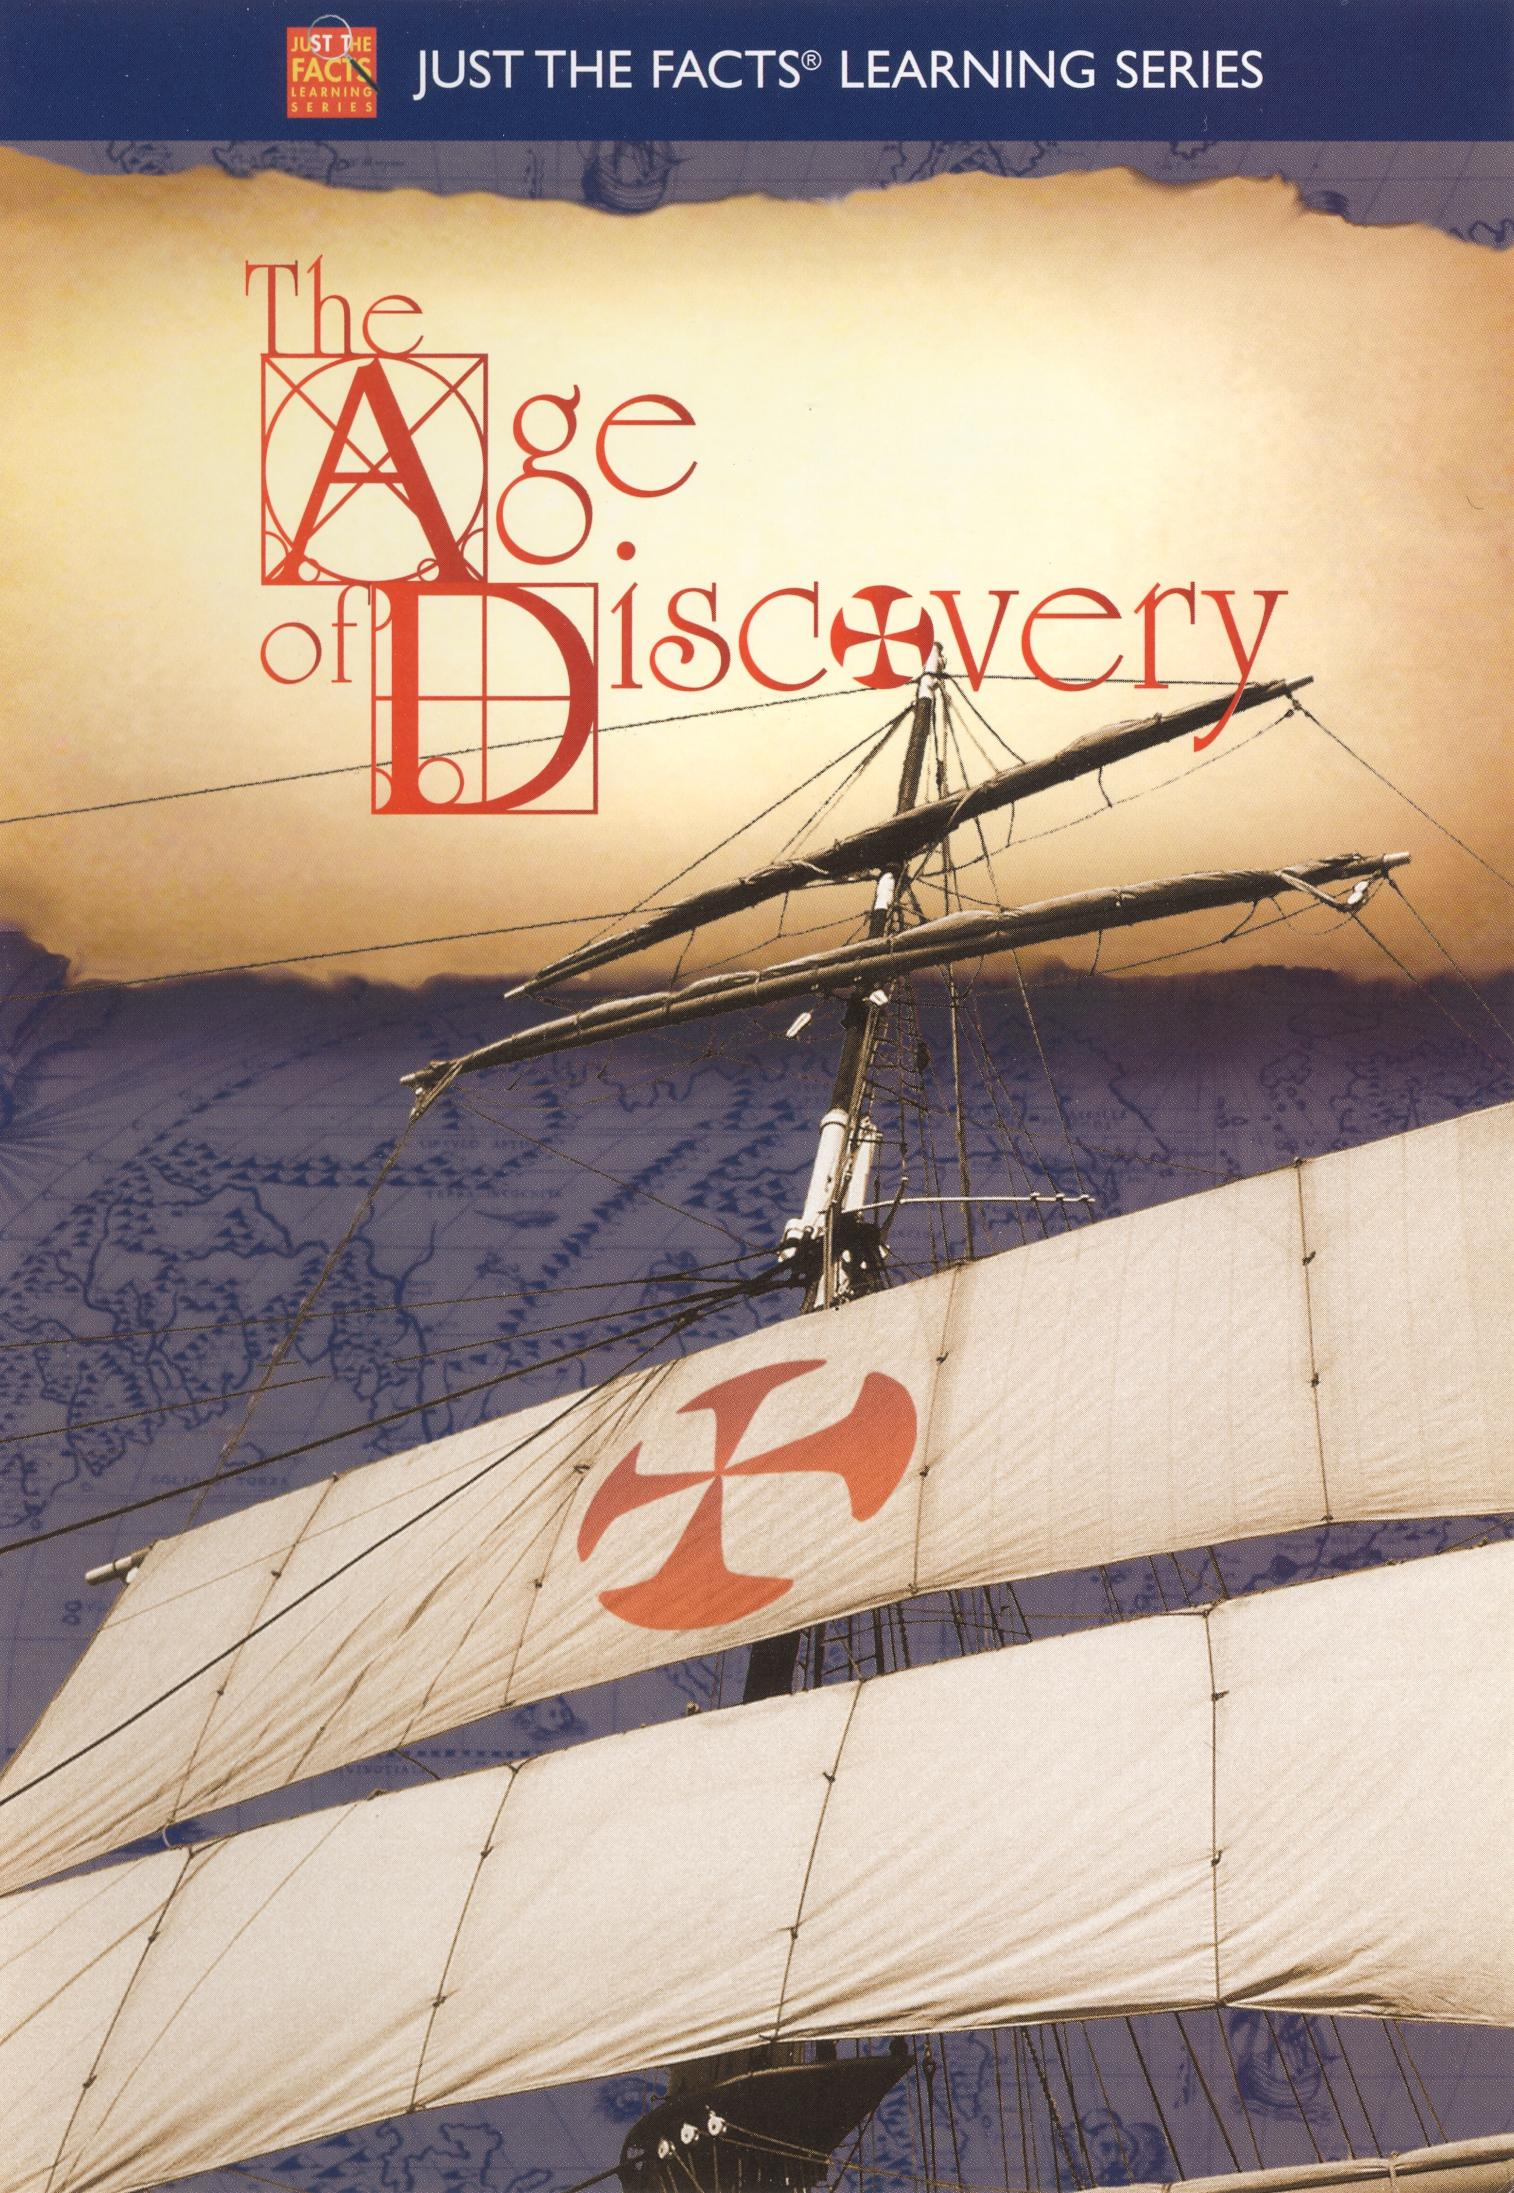 Just the Facts: The Age of Discovery